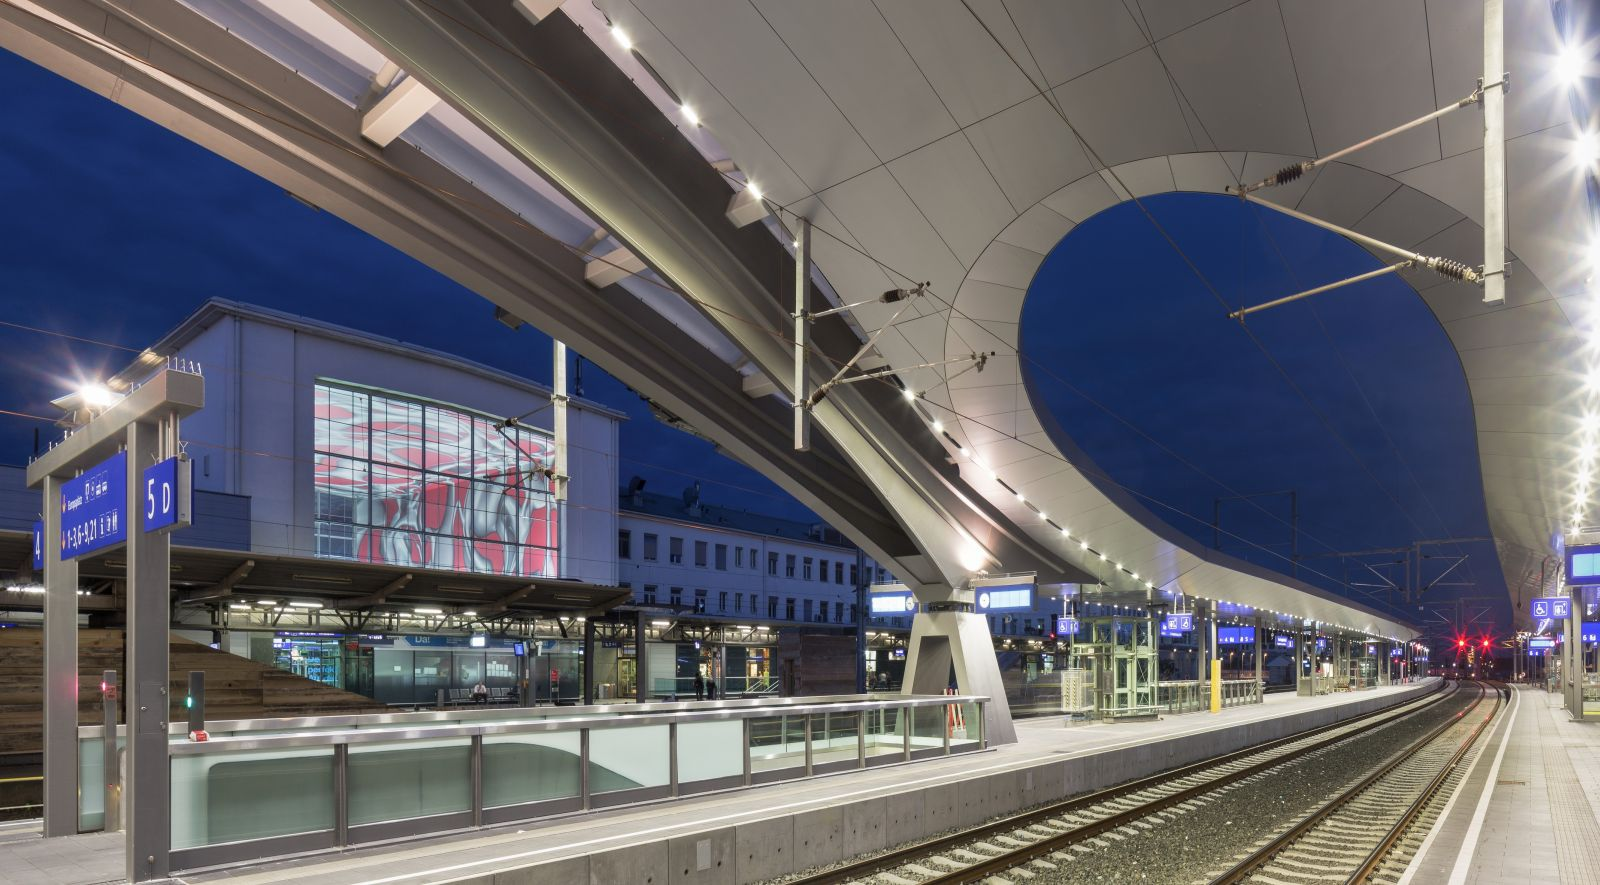 Graz Main Station